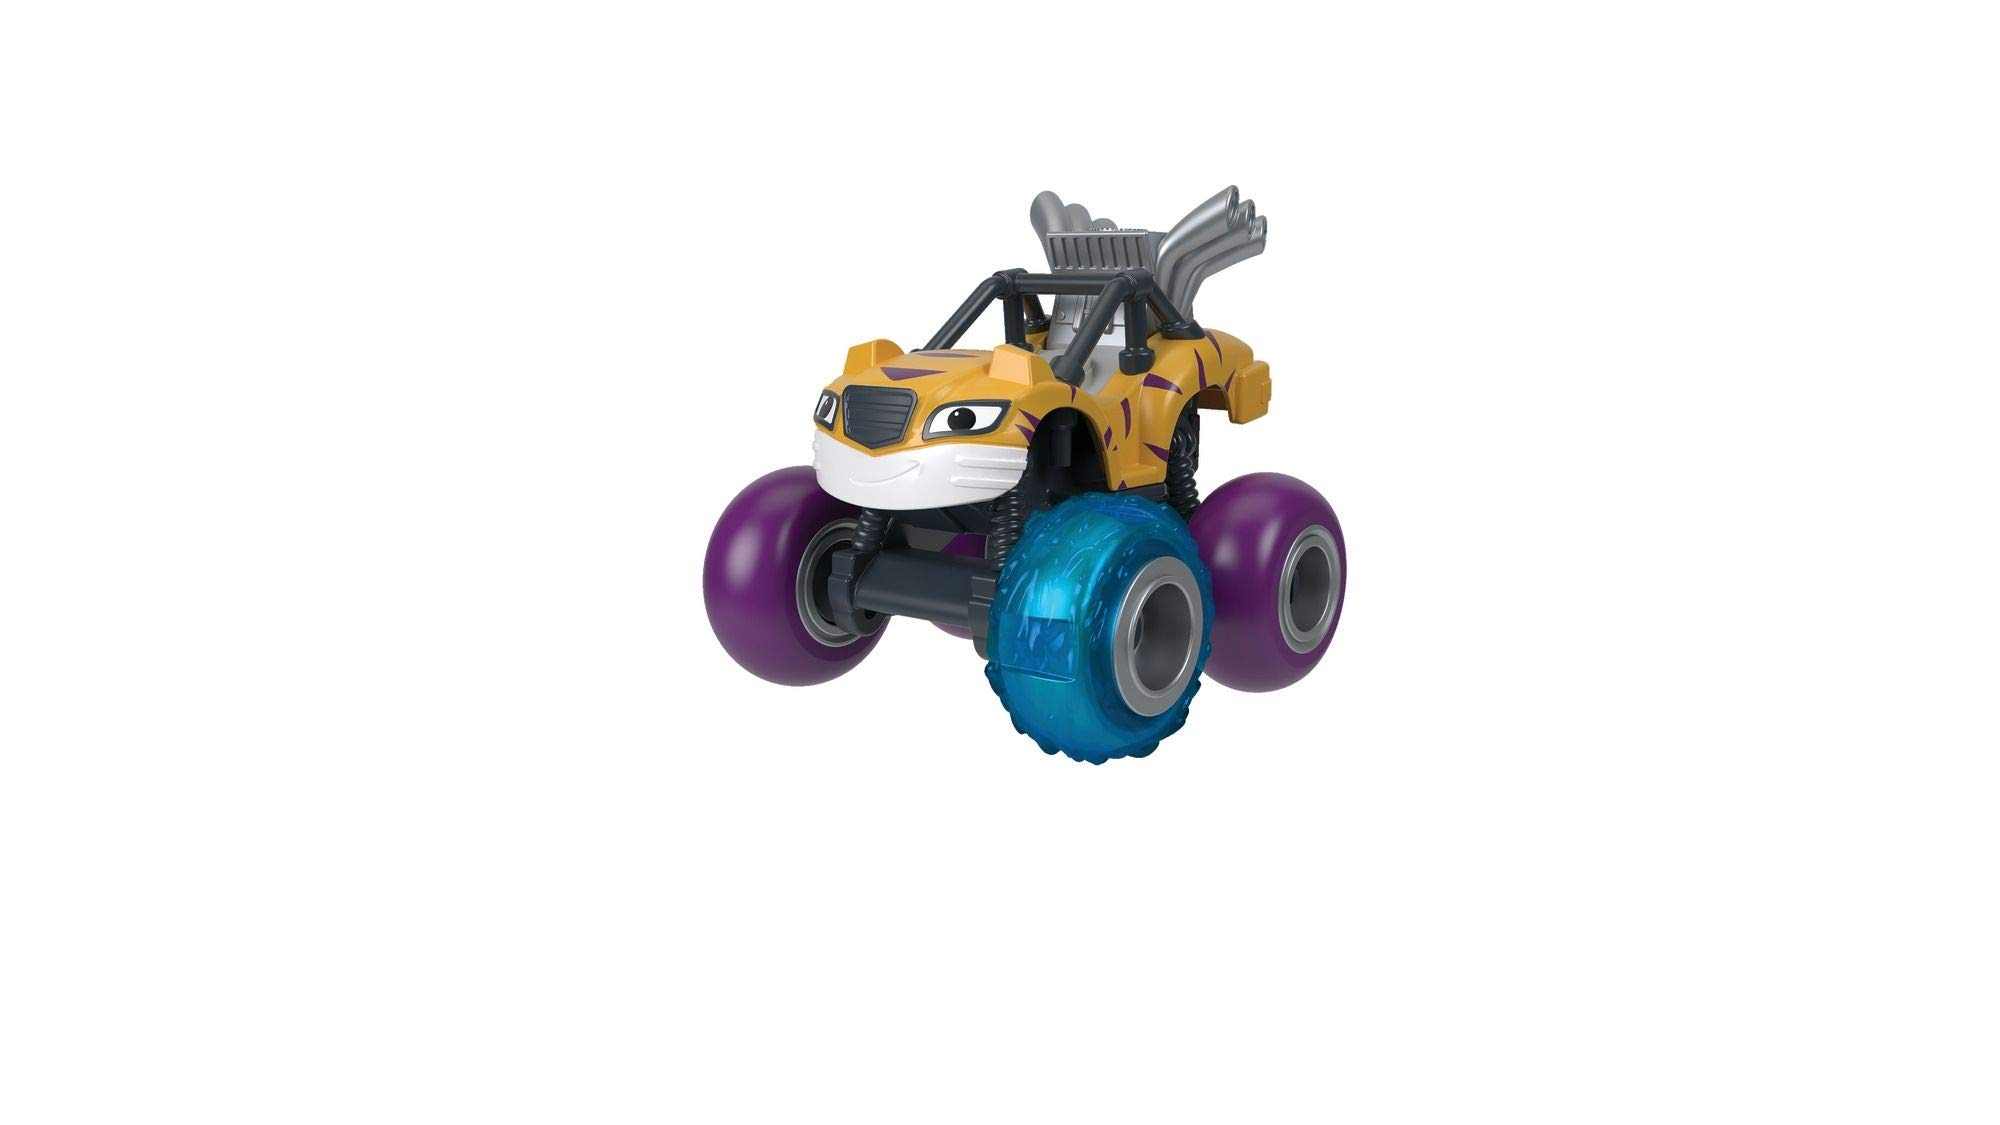 Fisher-Price Nickelodeon Blaze & the Monster Machines Tune-Up Tires, Stripes by Fisher-Price (Image #6)